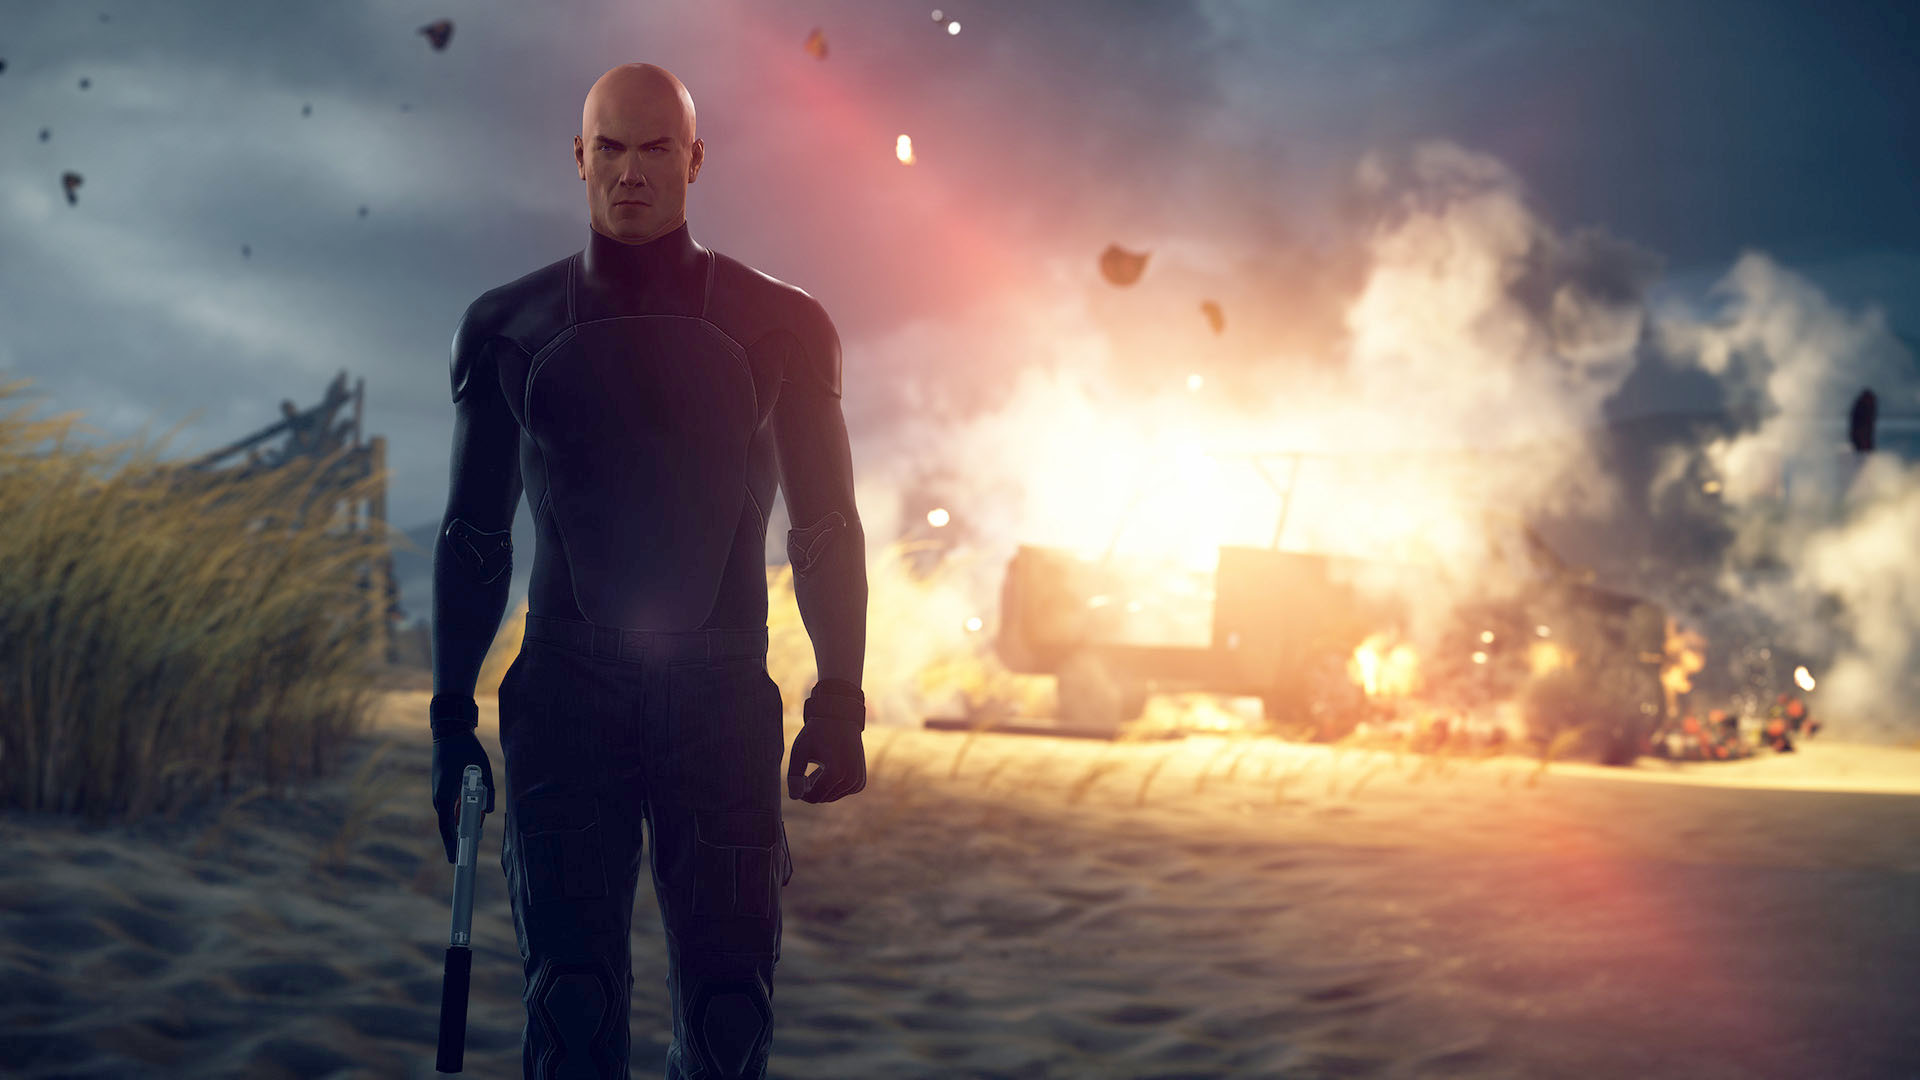 Hitman 2 is the latest game to drop Denuvo